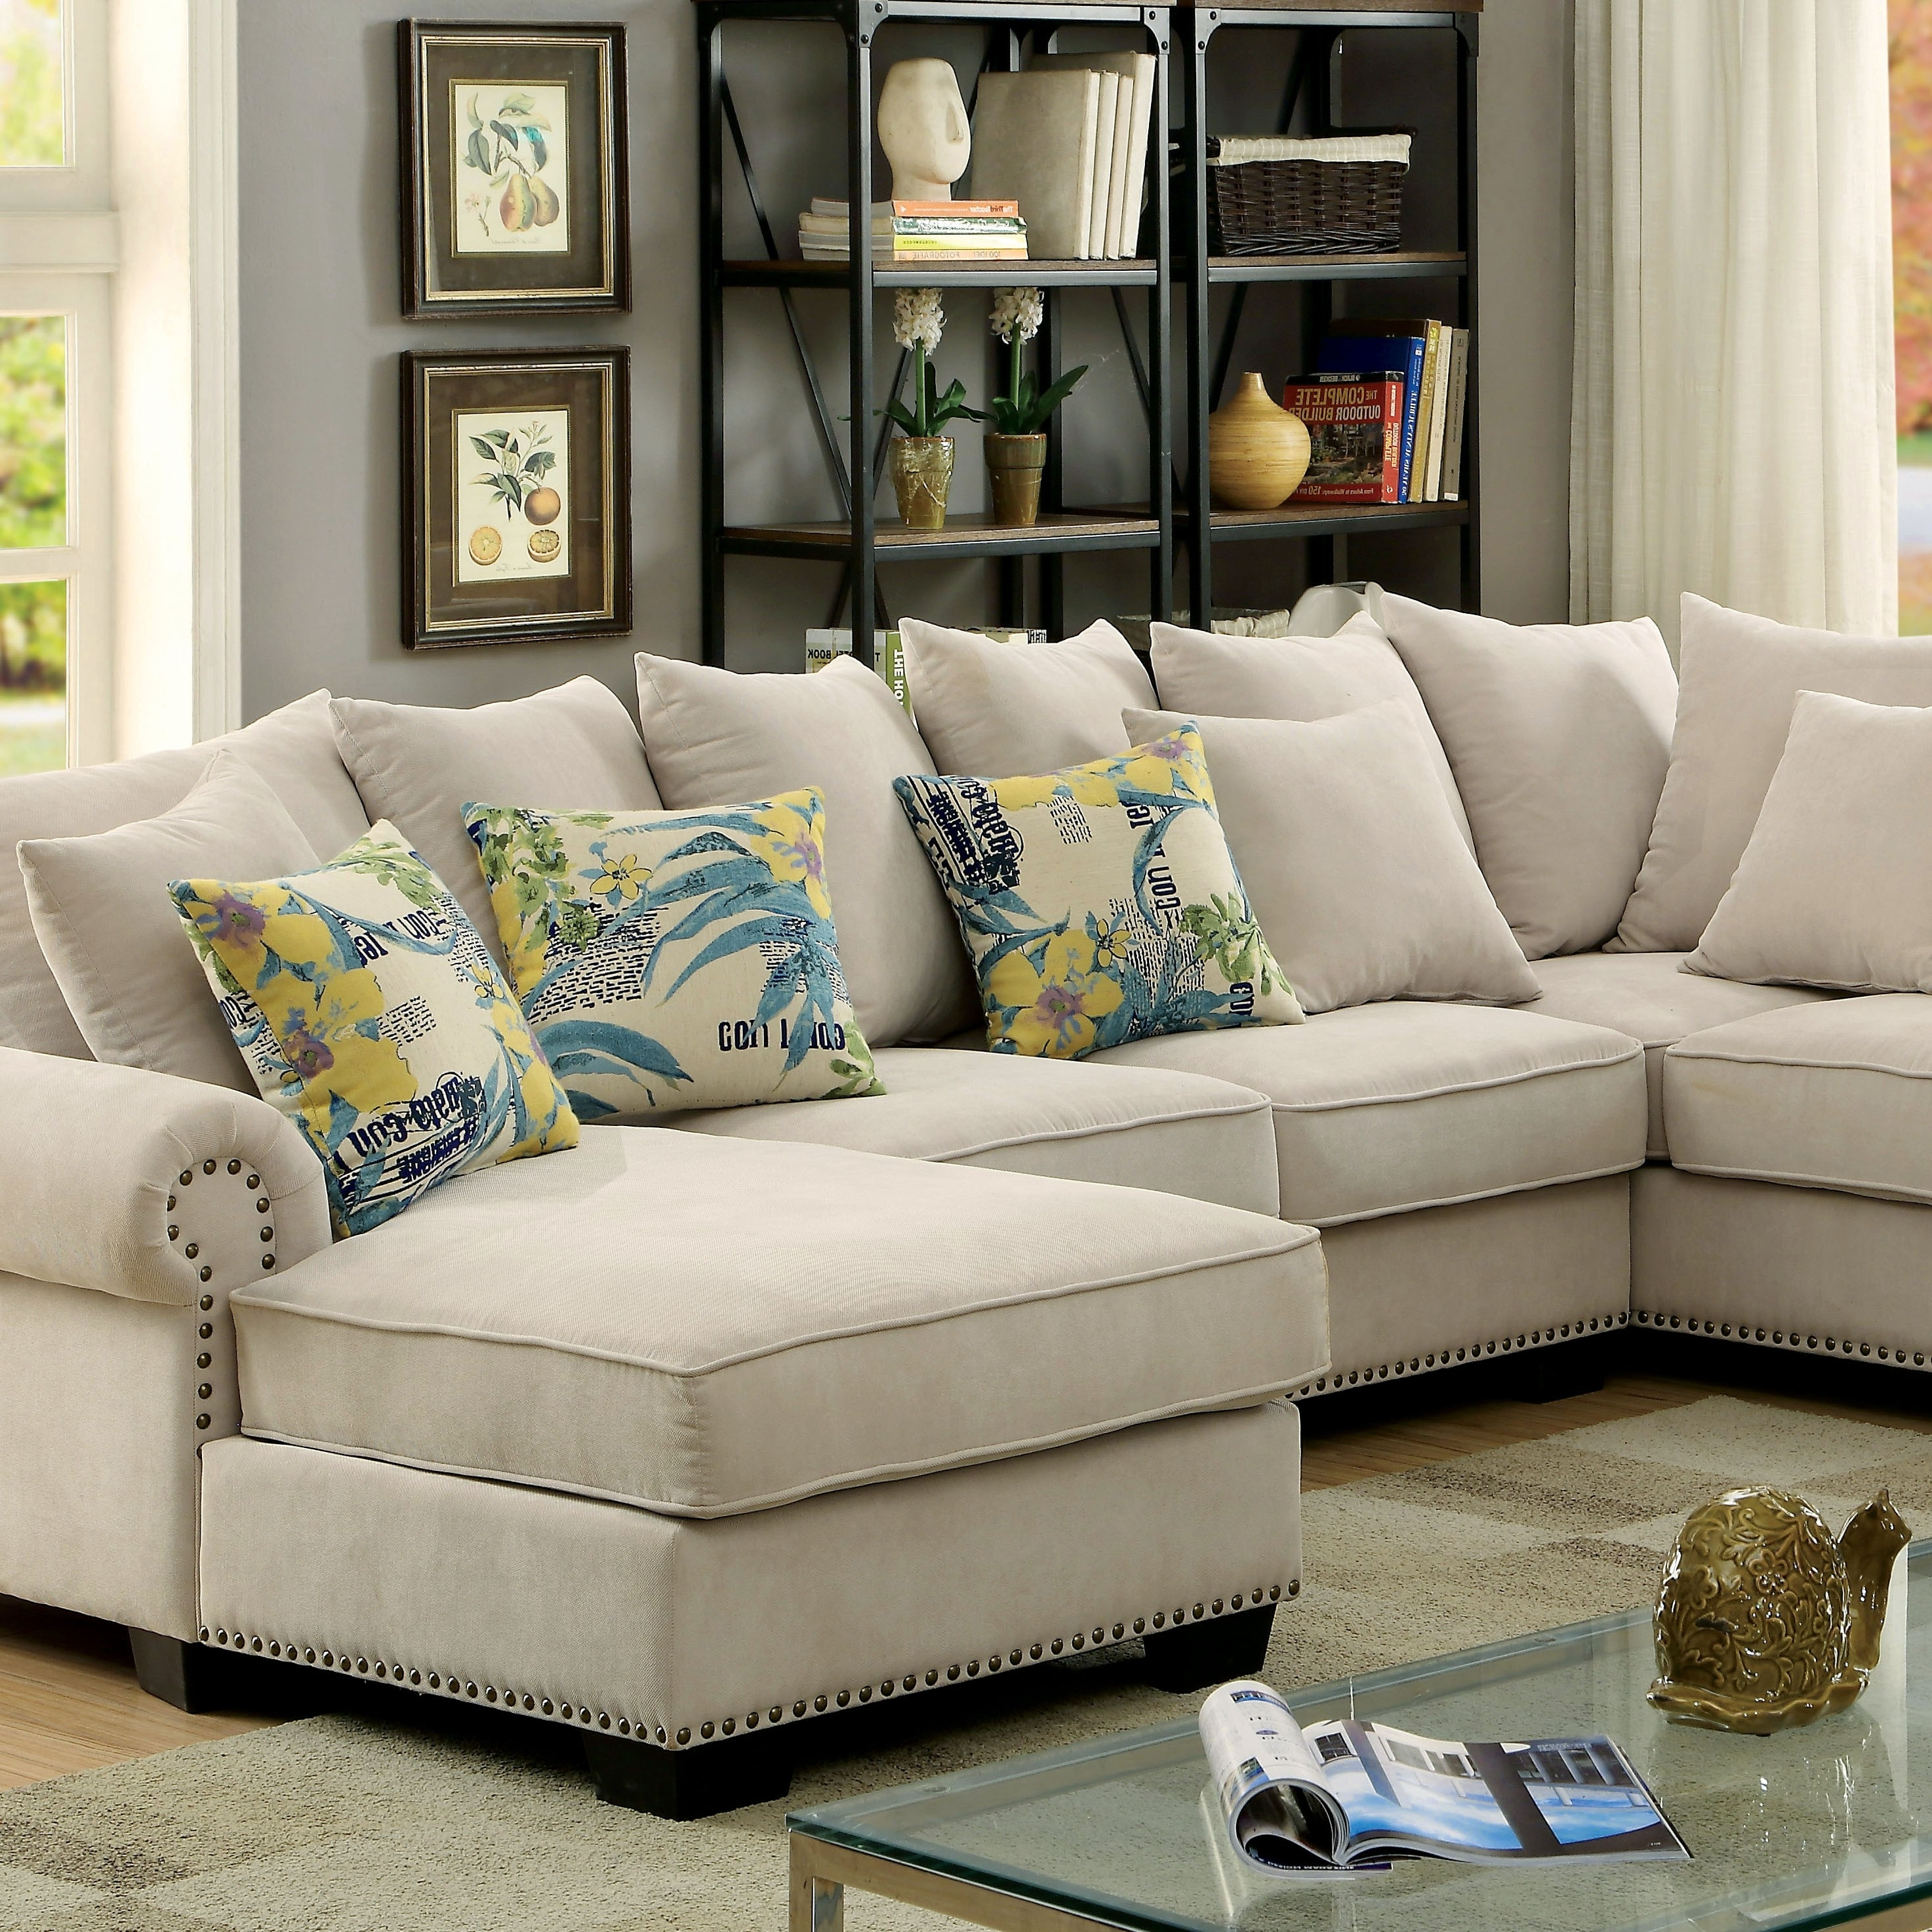 Skyler Transitional Ivory Fabric Sectional Sofa Couch – Shop For With Most Recent Fabric Sectional Sofas (View 13 of 15)